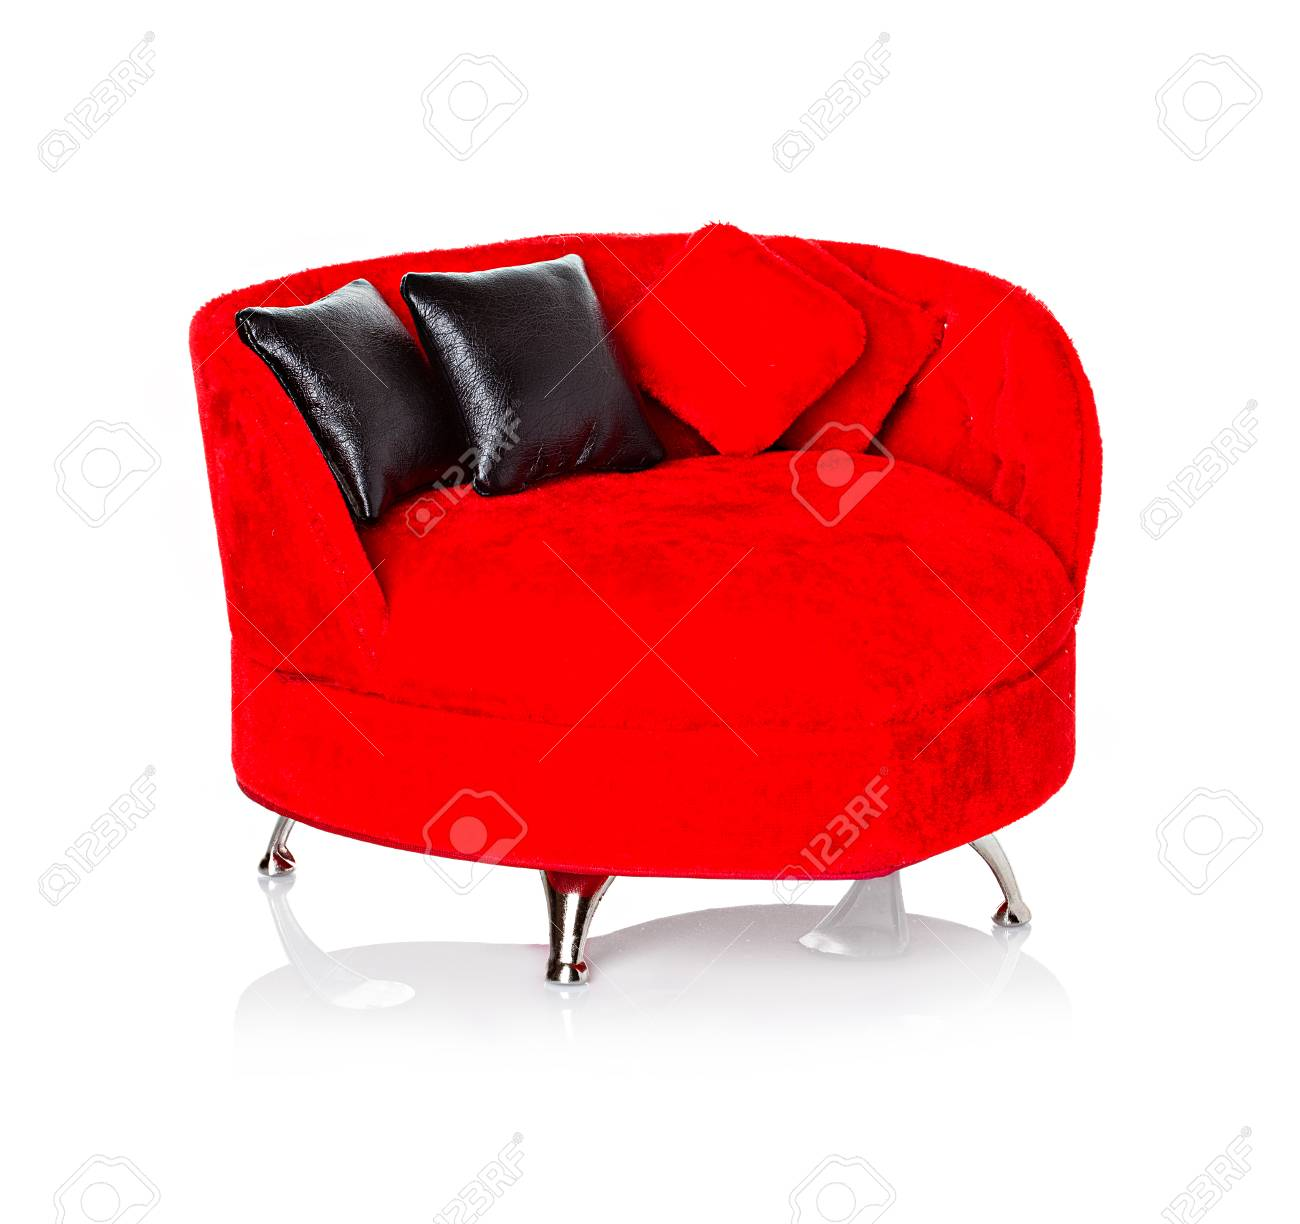 Red sofa, couch Stock Photo - 25257030